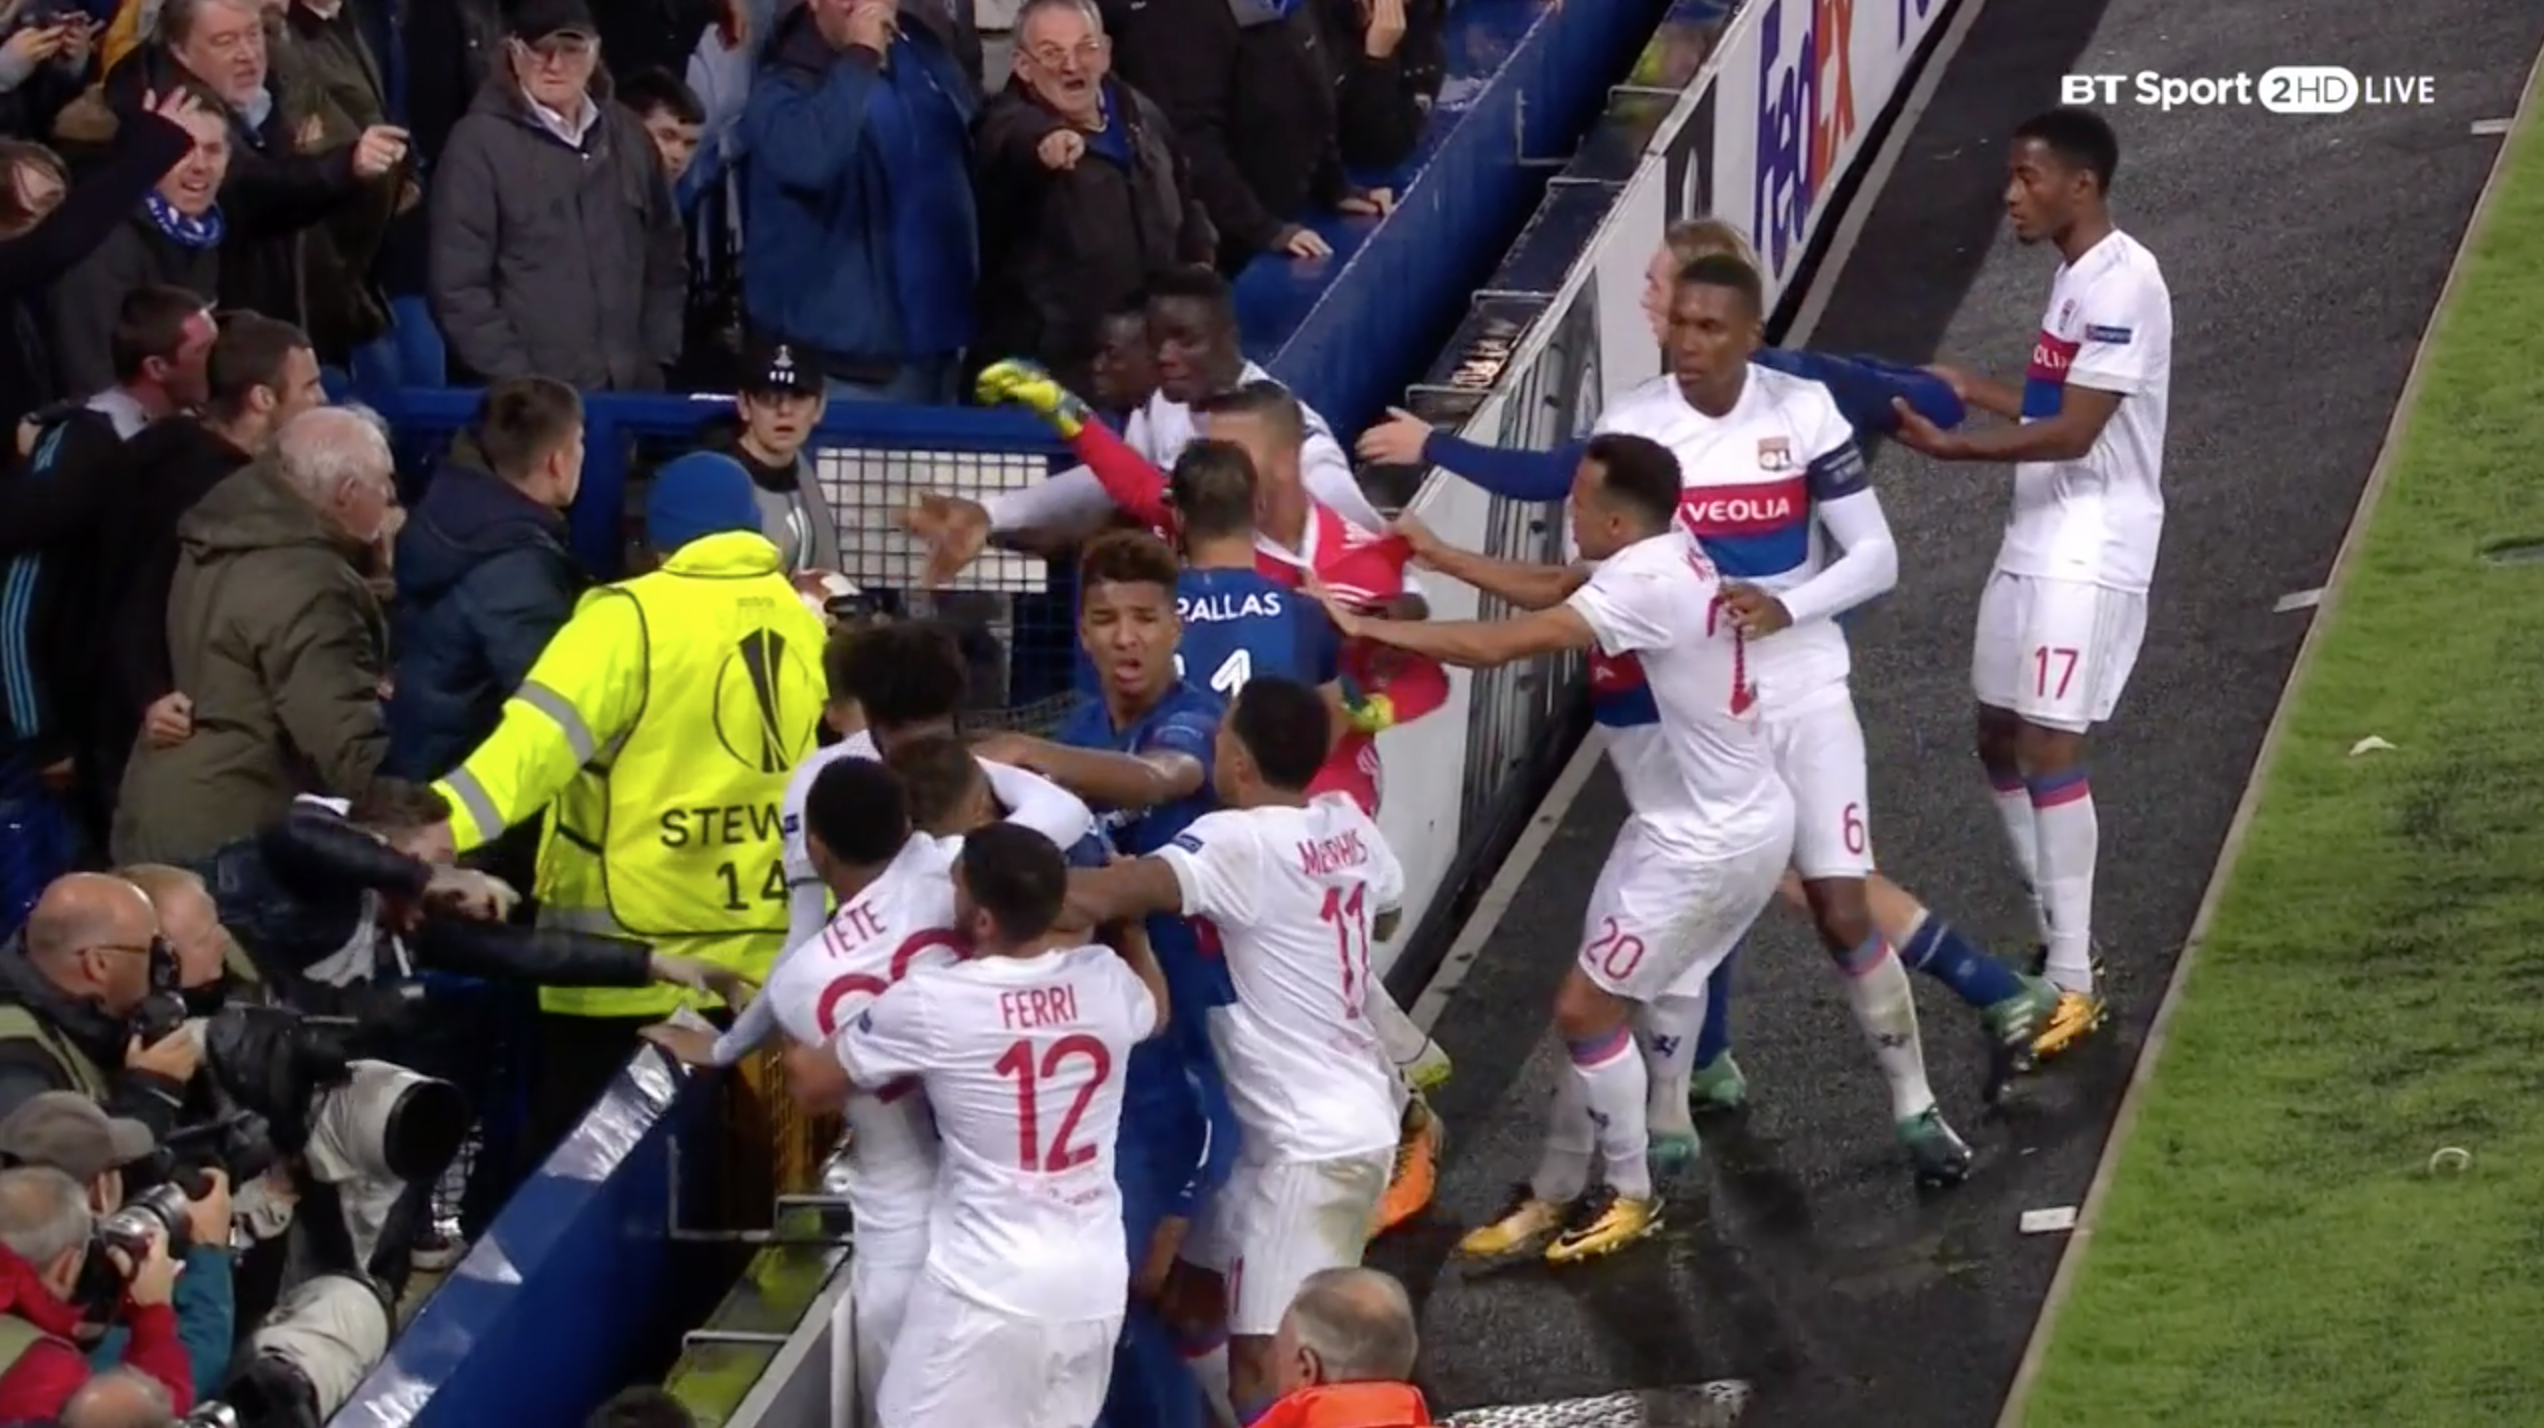 Everton Fans, Including Man With Baby, Jump in Fight With Lyon Players